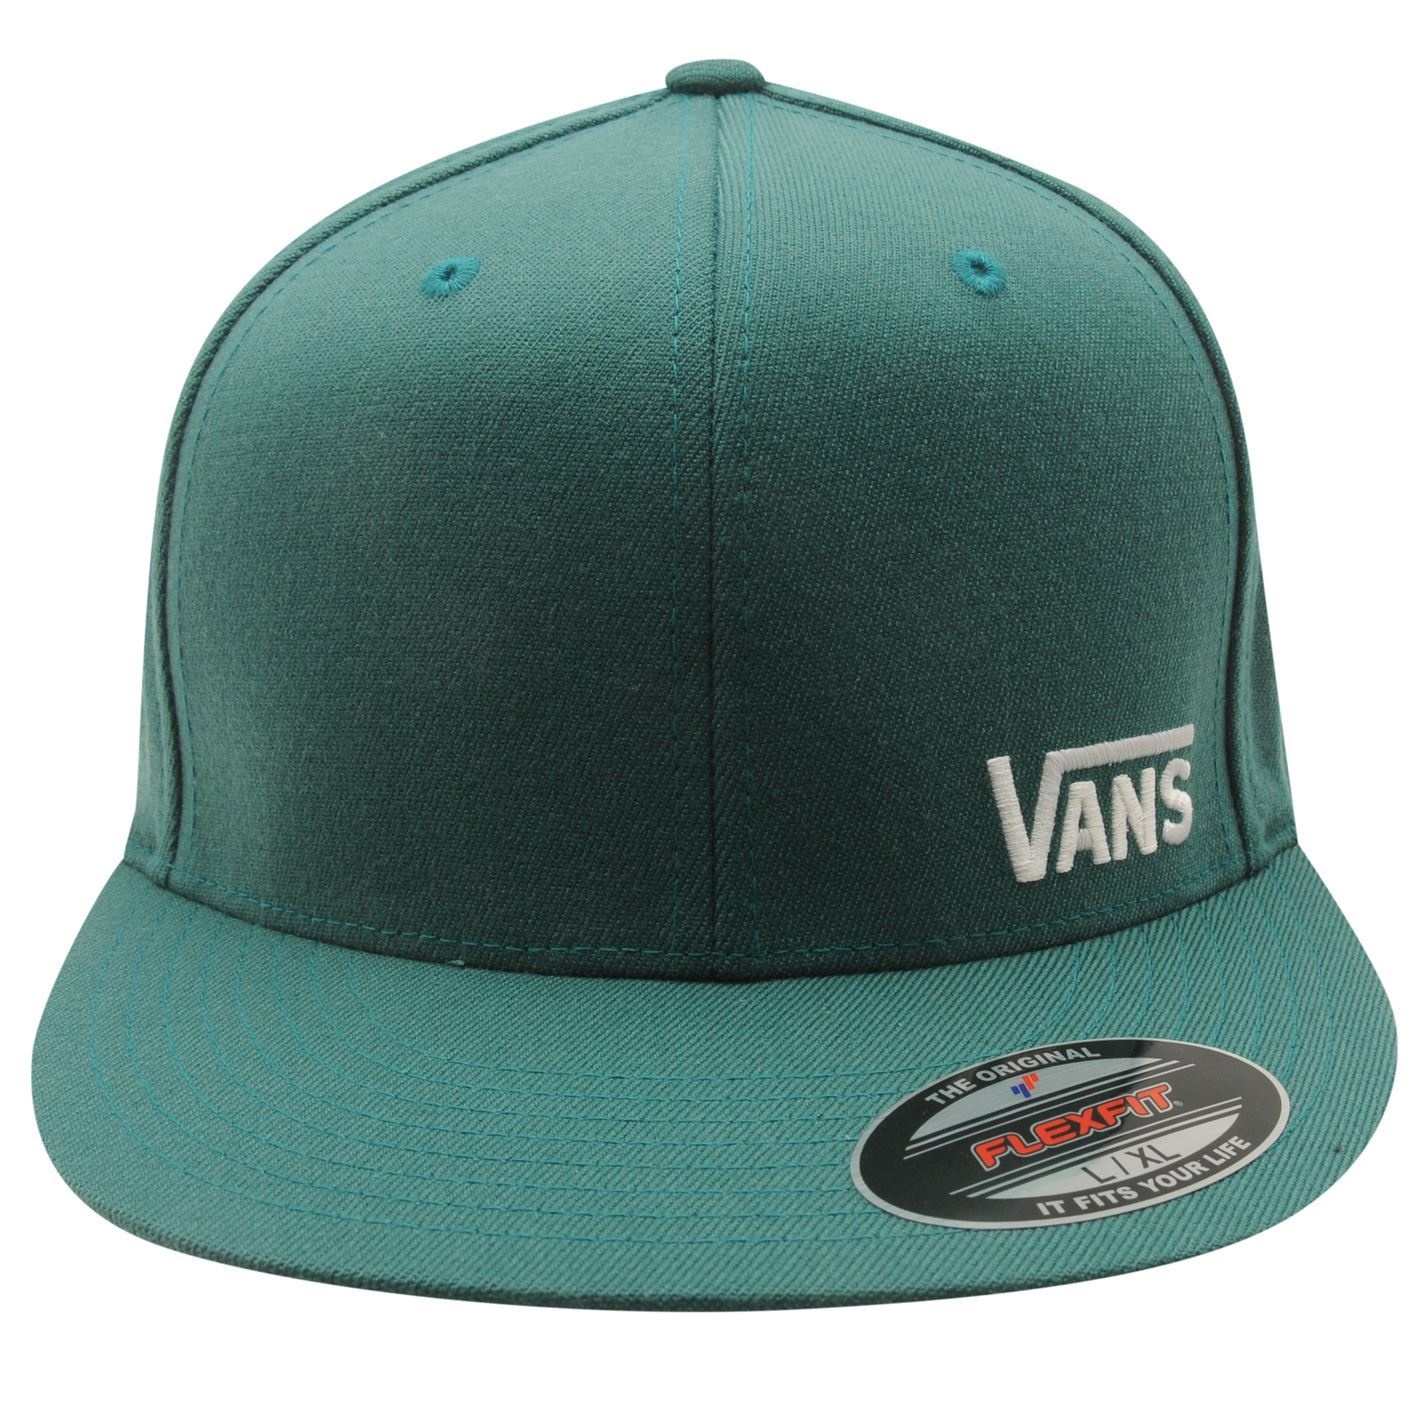 b73cb8ca Vans Mens Splitz Caps Baseball Hats Sports Headwear Accessories | eBay